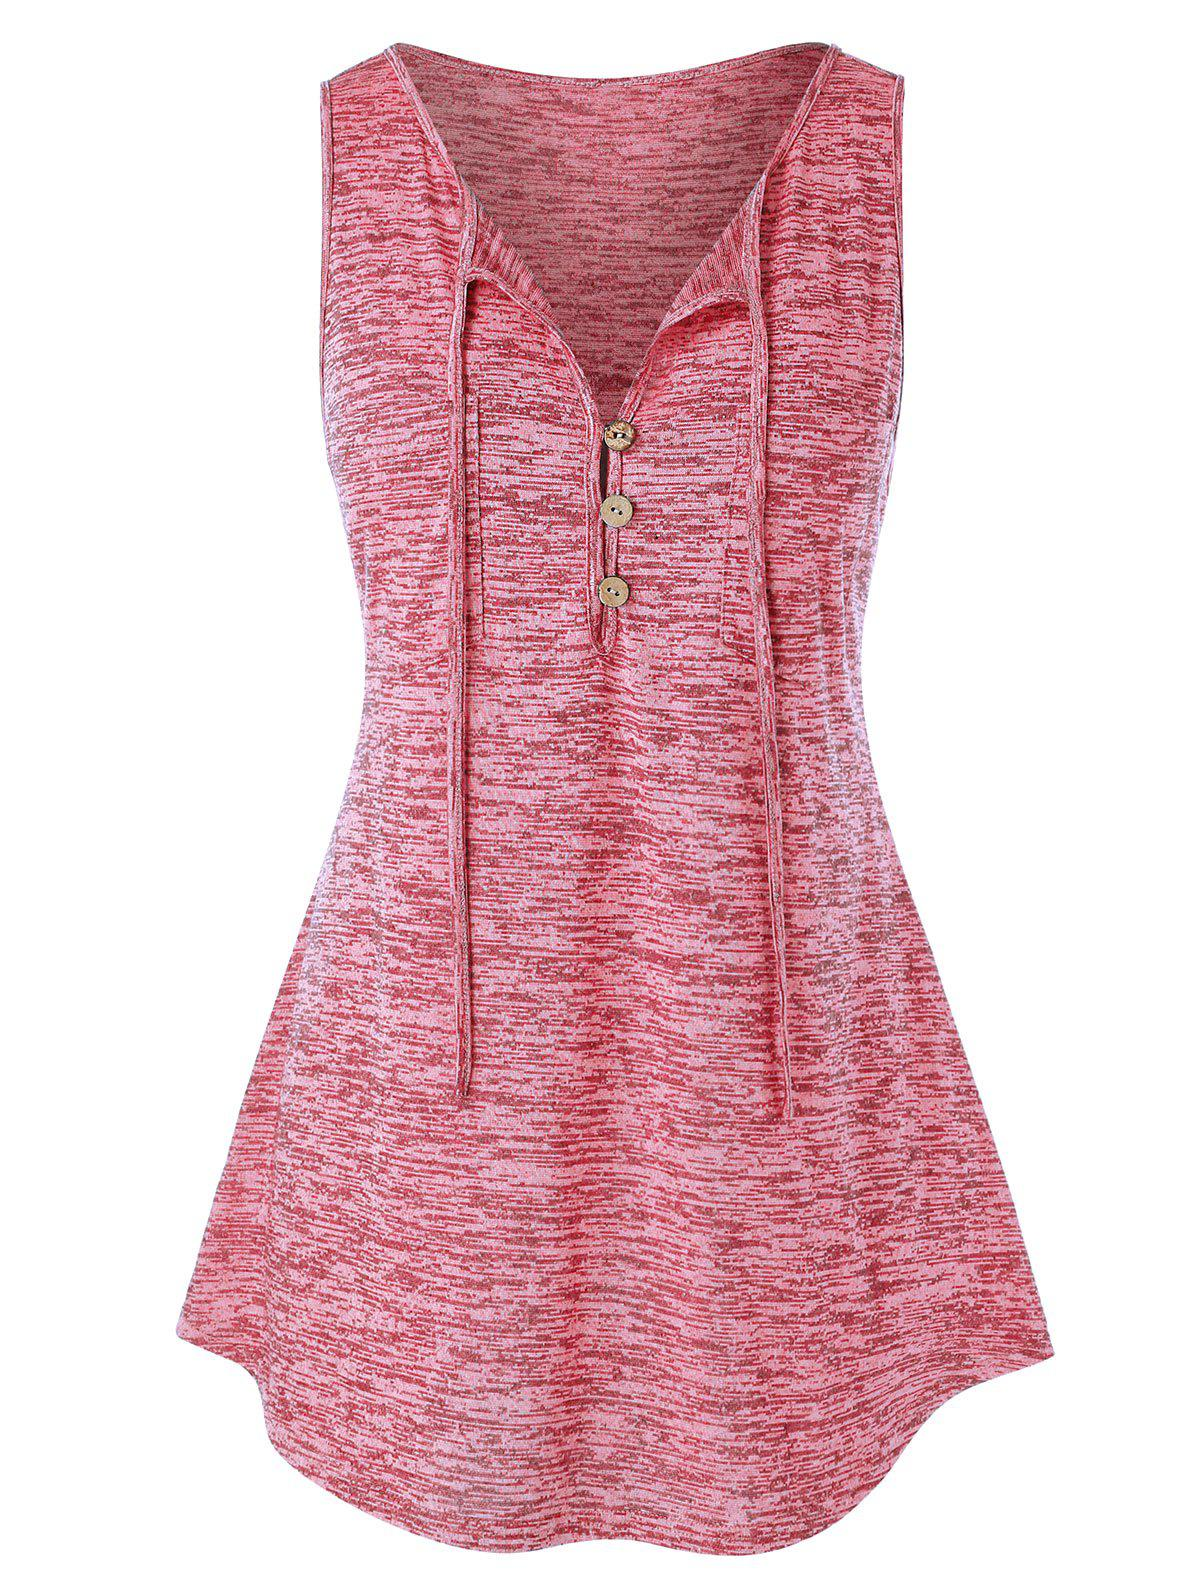 Plus Size Button Embellished Marled Tank Top - FLAMINGO PINK 2X